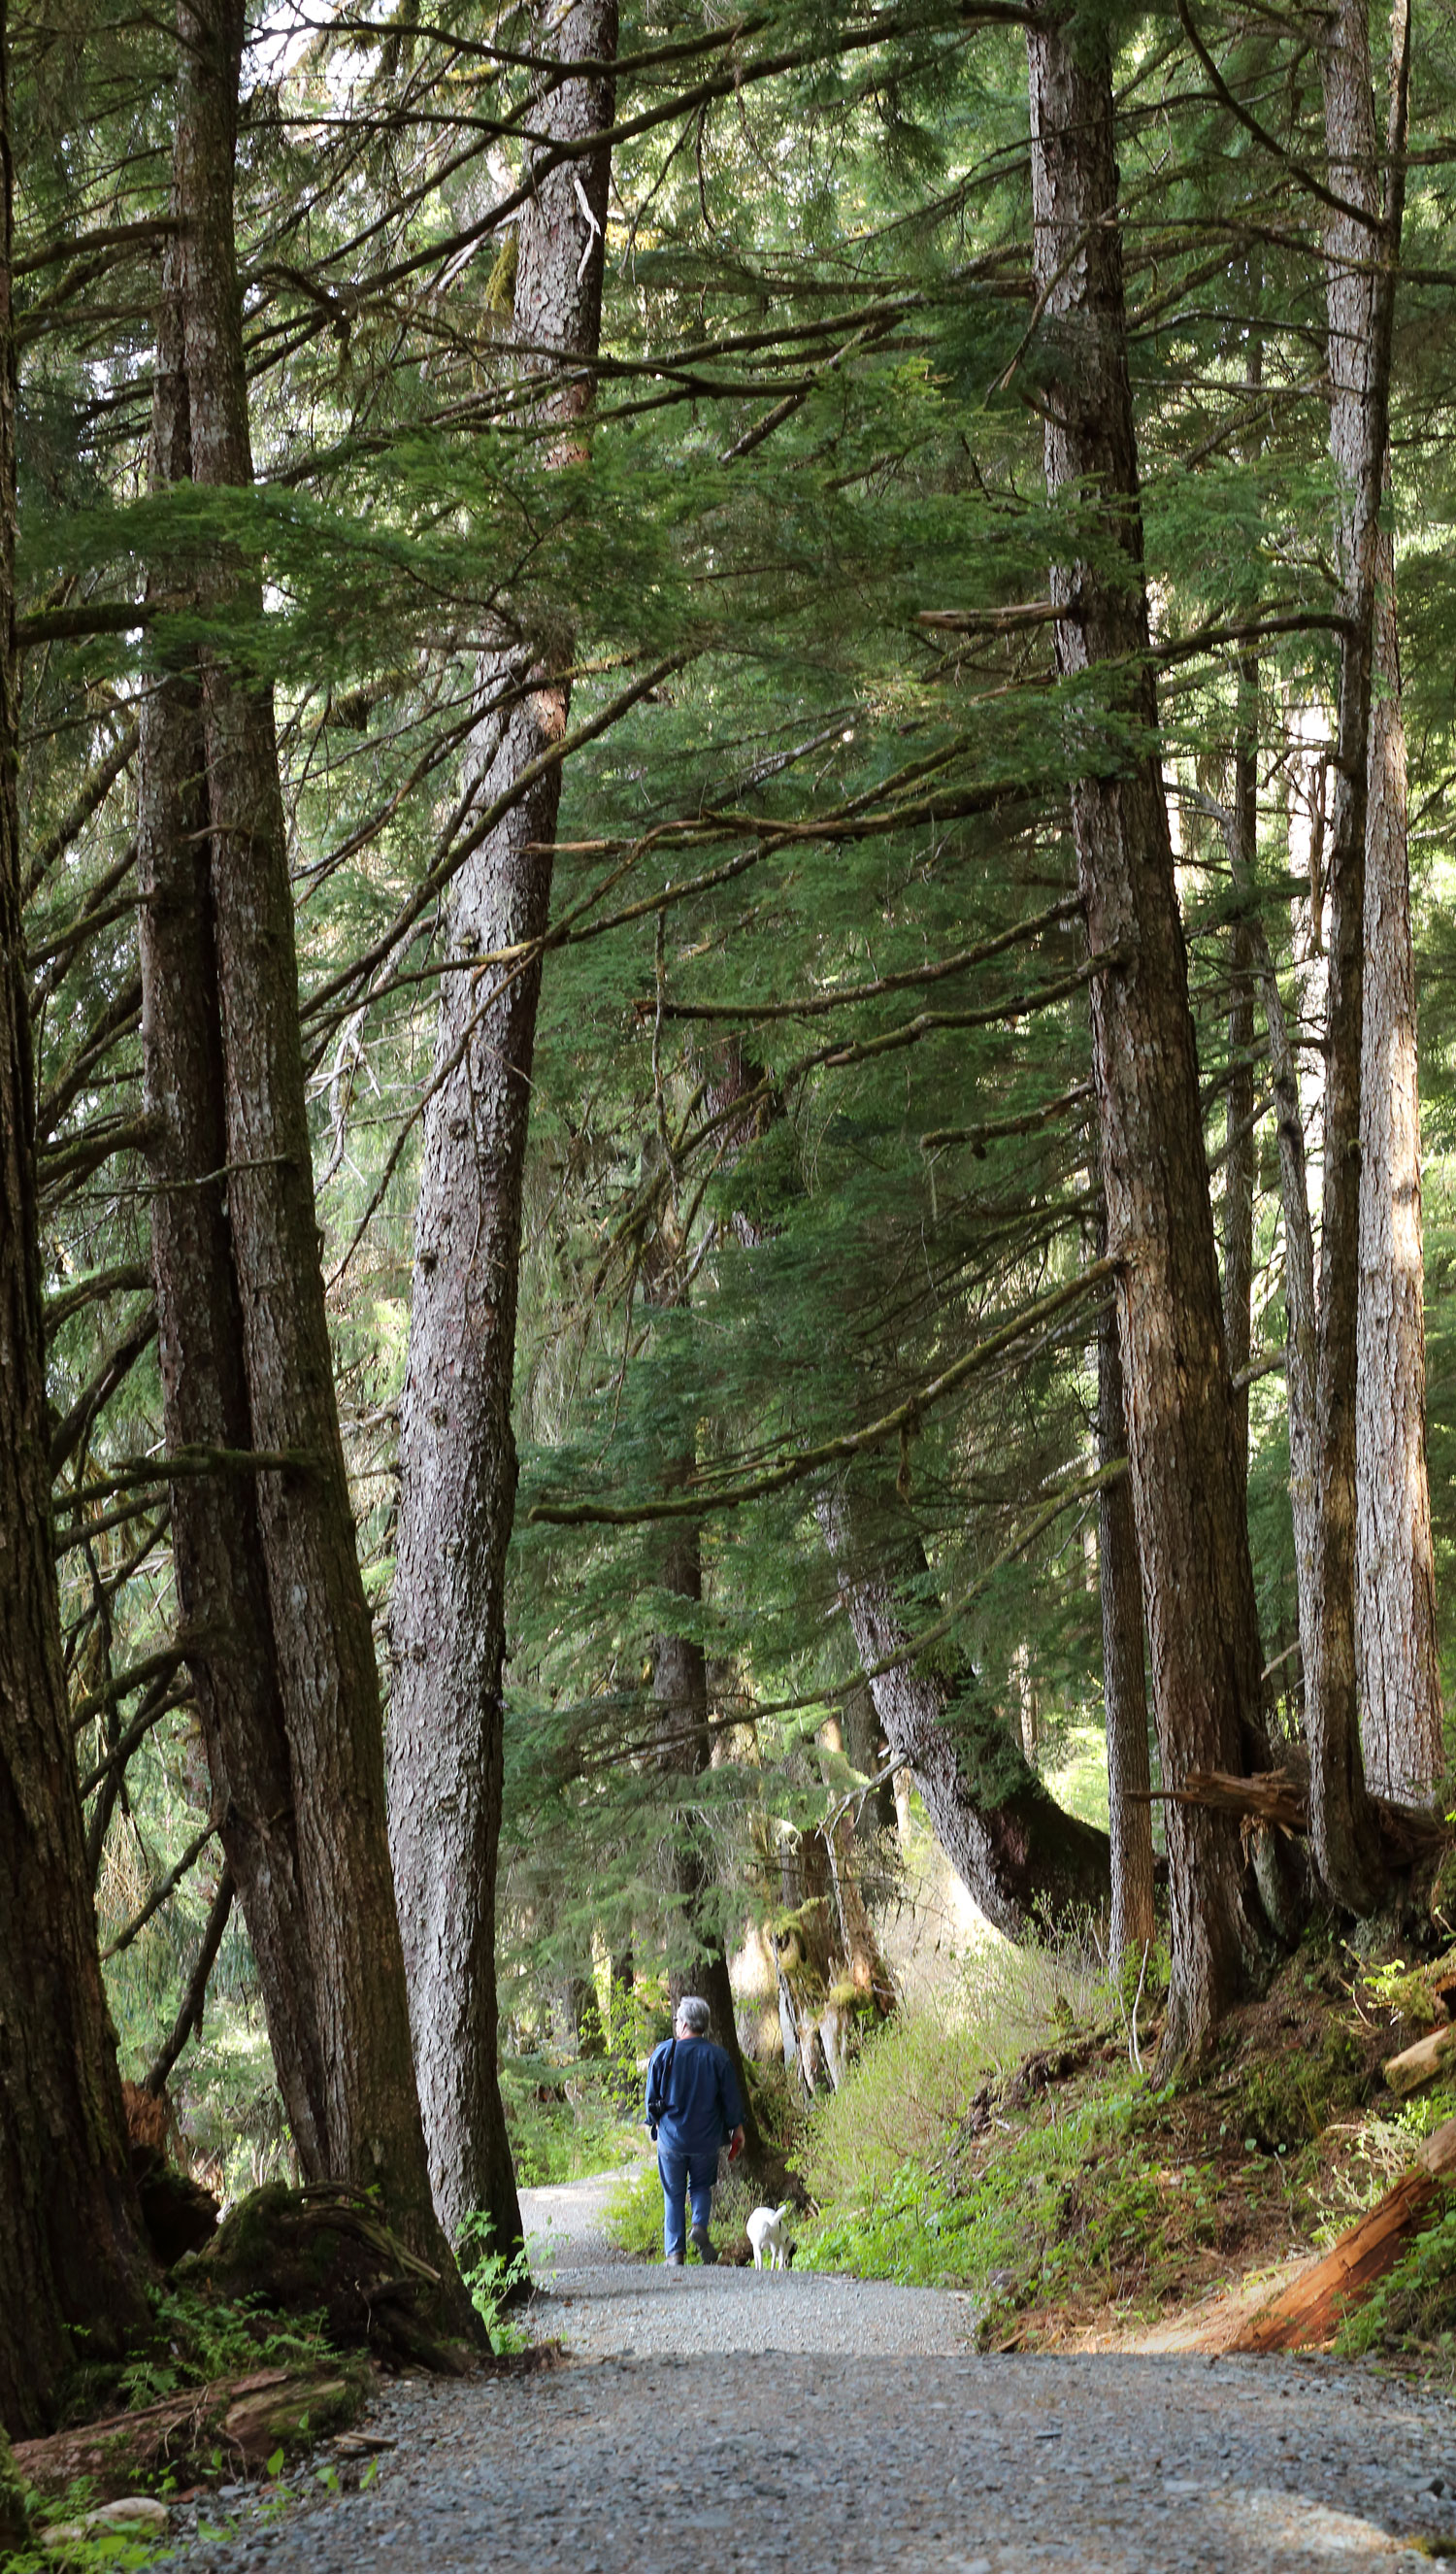 Auke Lake Trail has forested stretches and floating bridges on the lake.